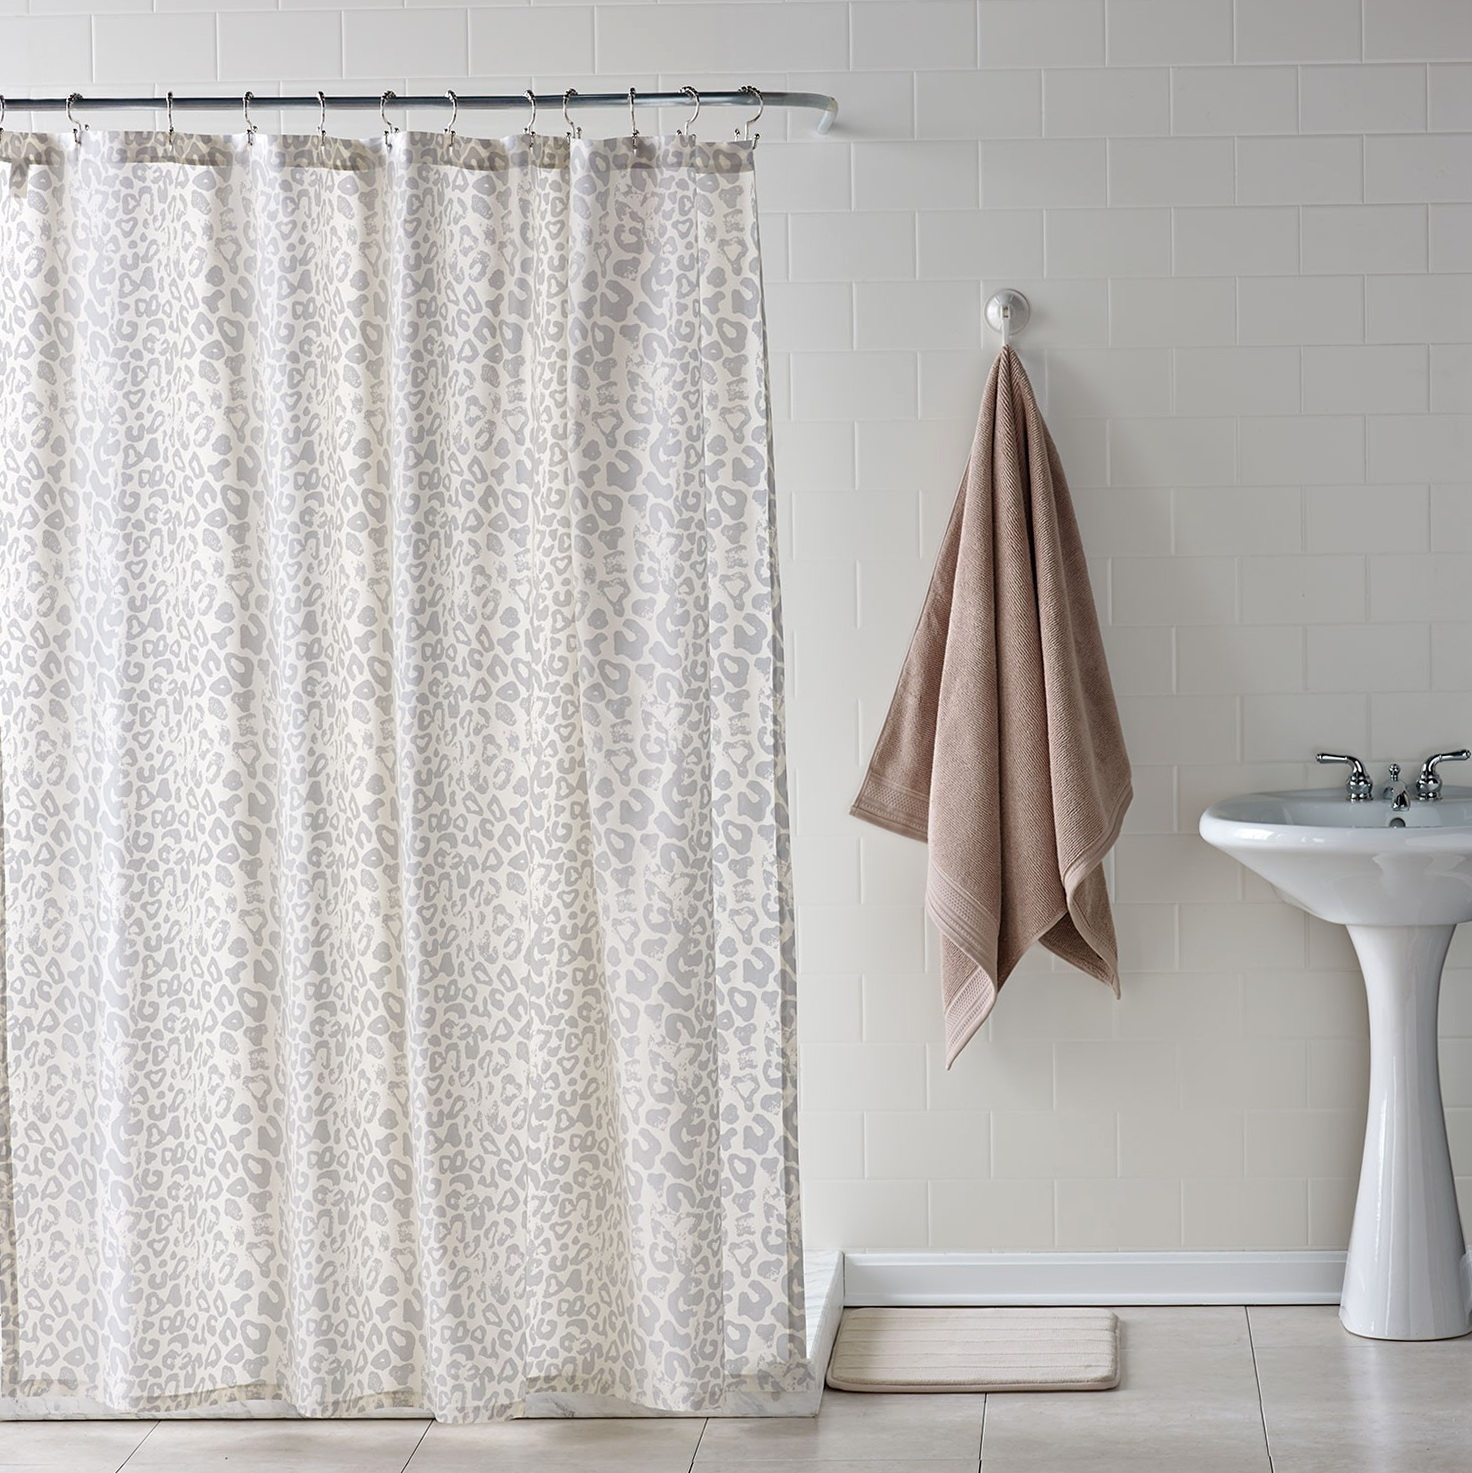 Cool Shower Curtains For Guys Home Design Ideas